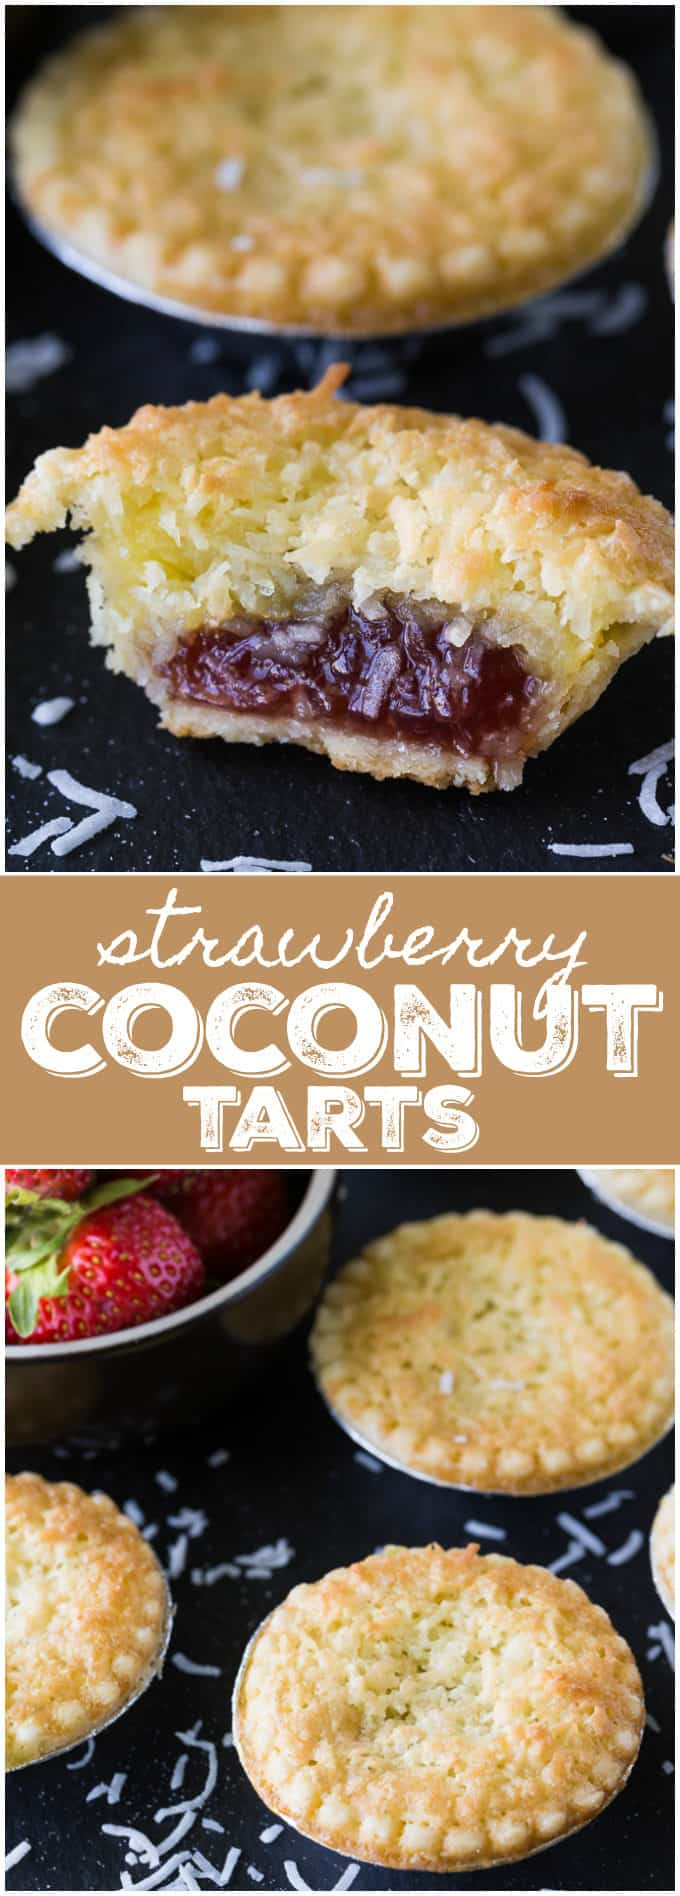 Strawberry Coconut Tarts - Tiny tarts perfect for parties! Strawberry jam is surrounded by a coconut pie.